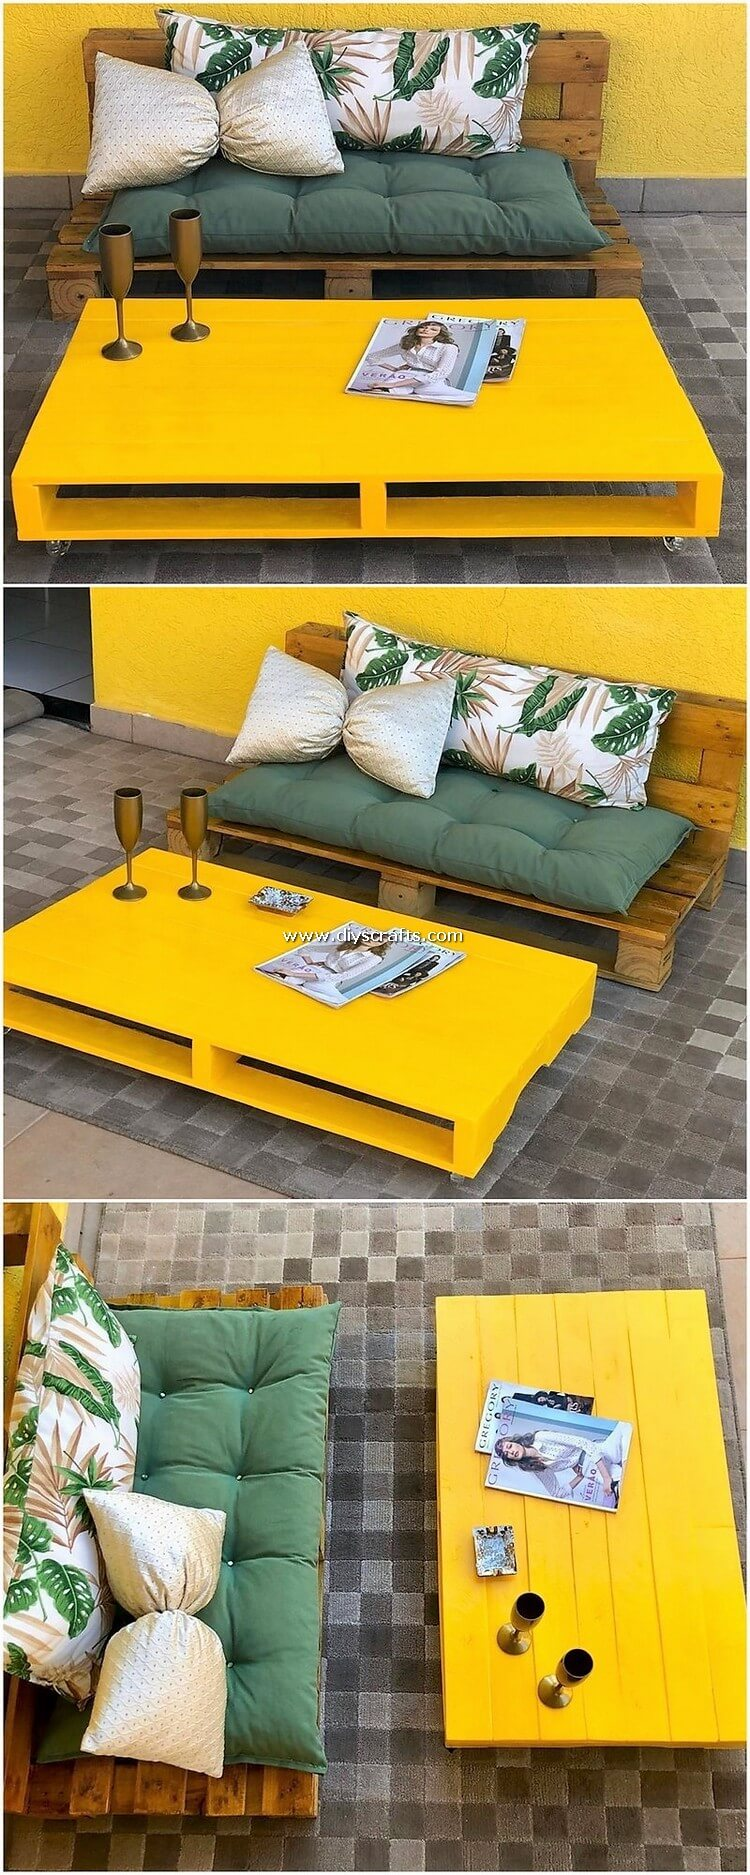 Pallet-Bench-and-Table